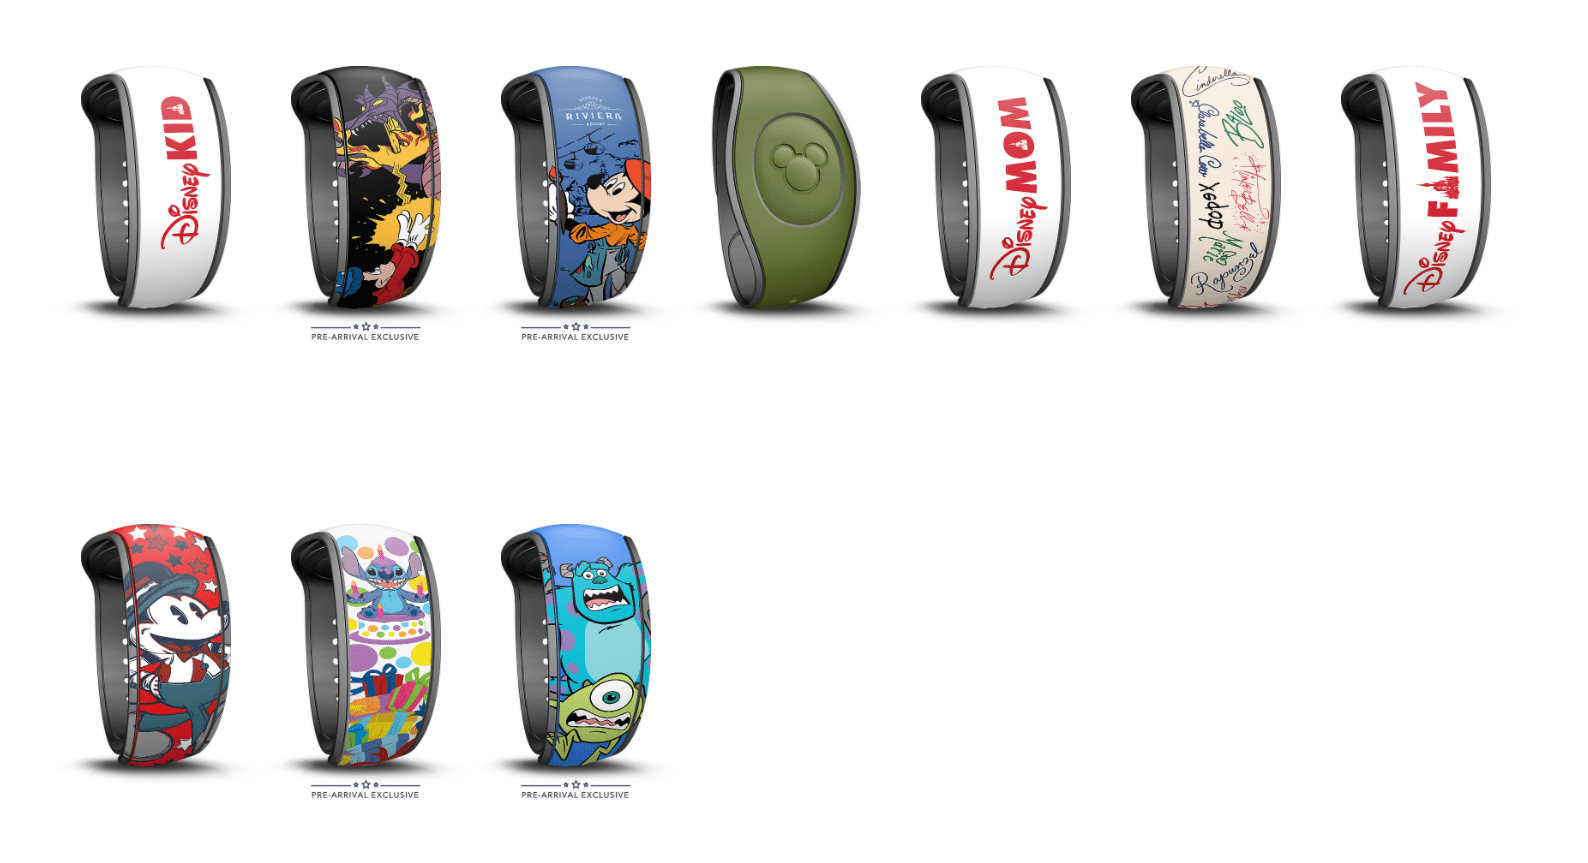 New Pre-Arrival Exclusive MagicBands on Disney World Website 10